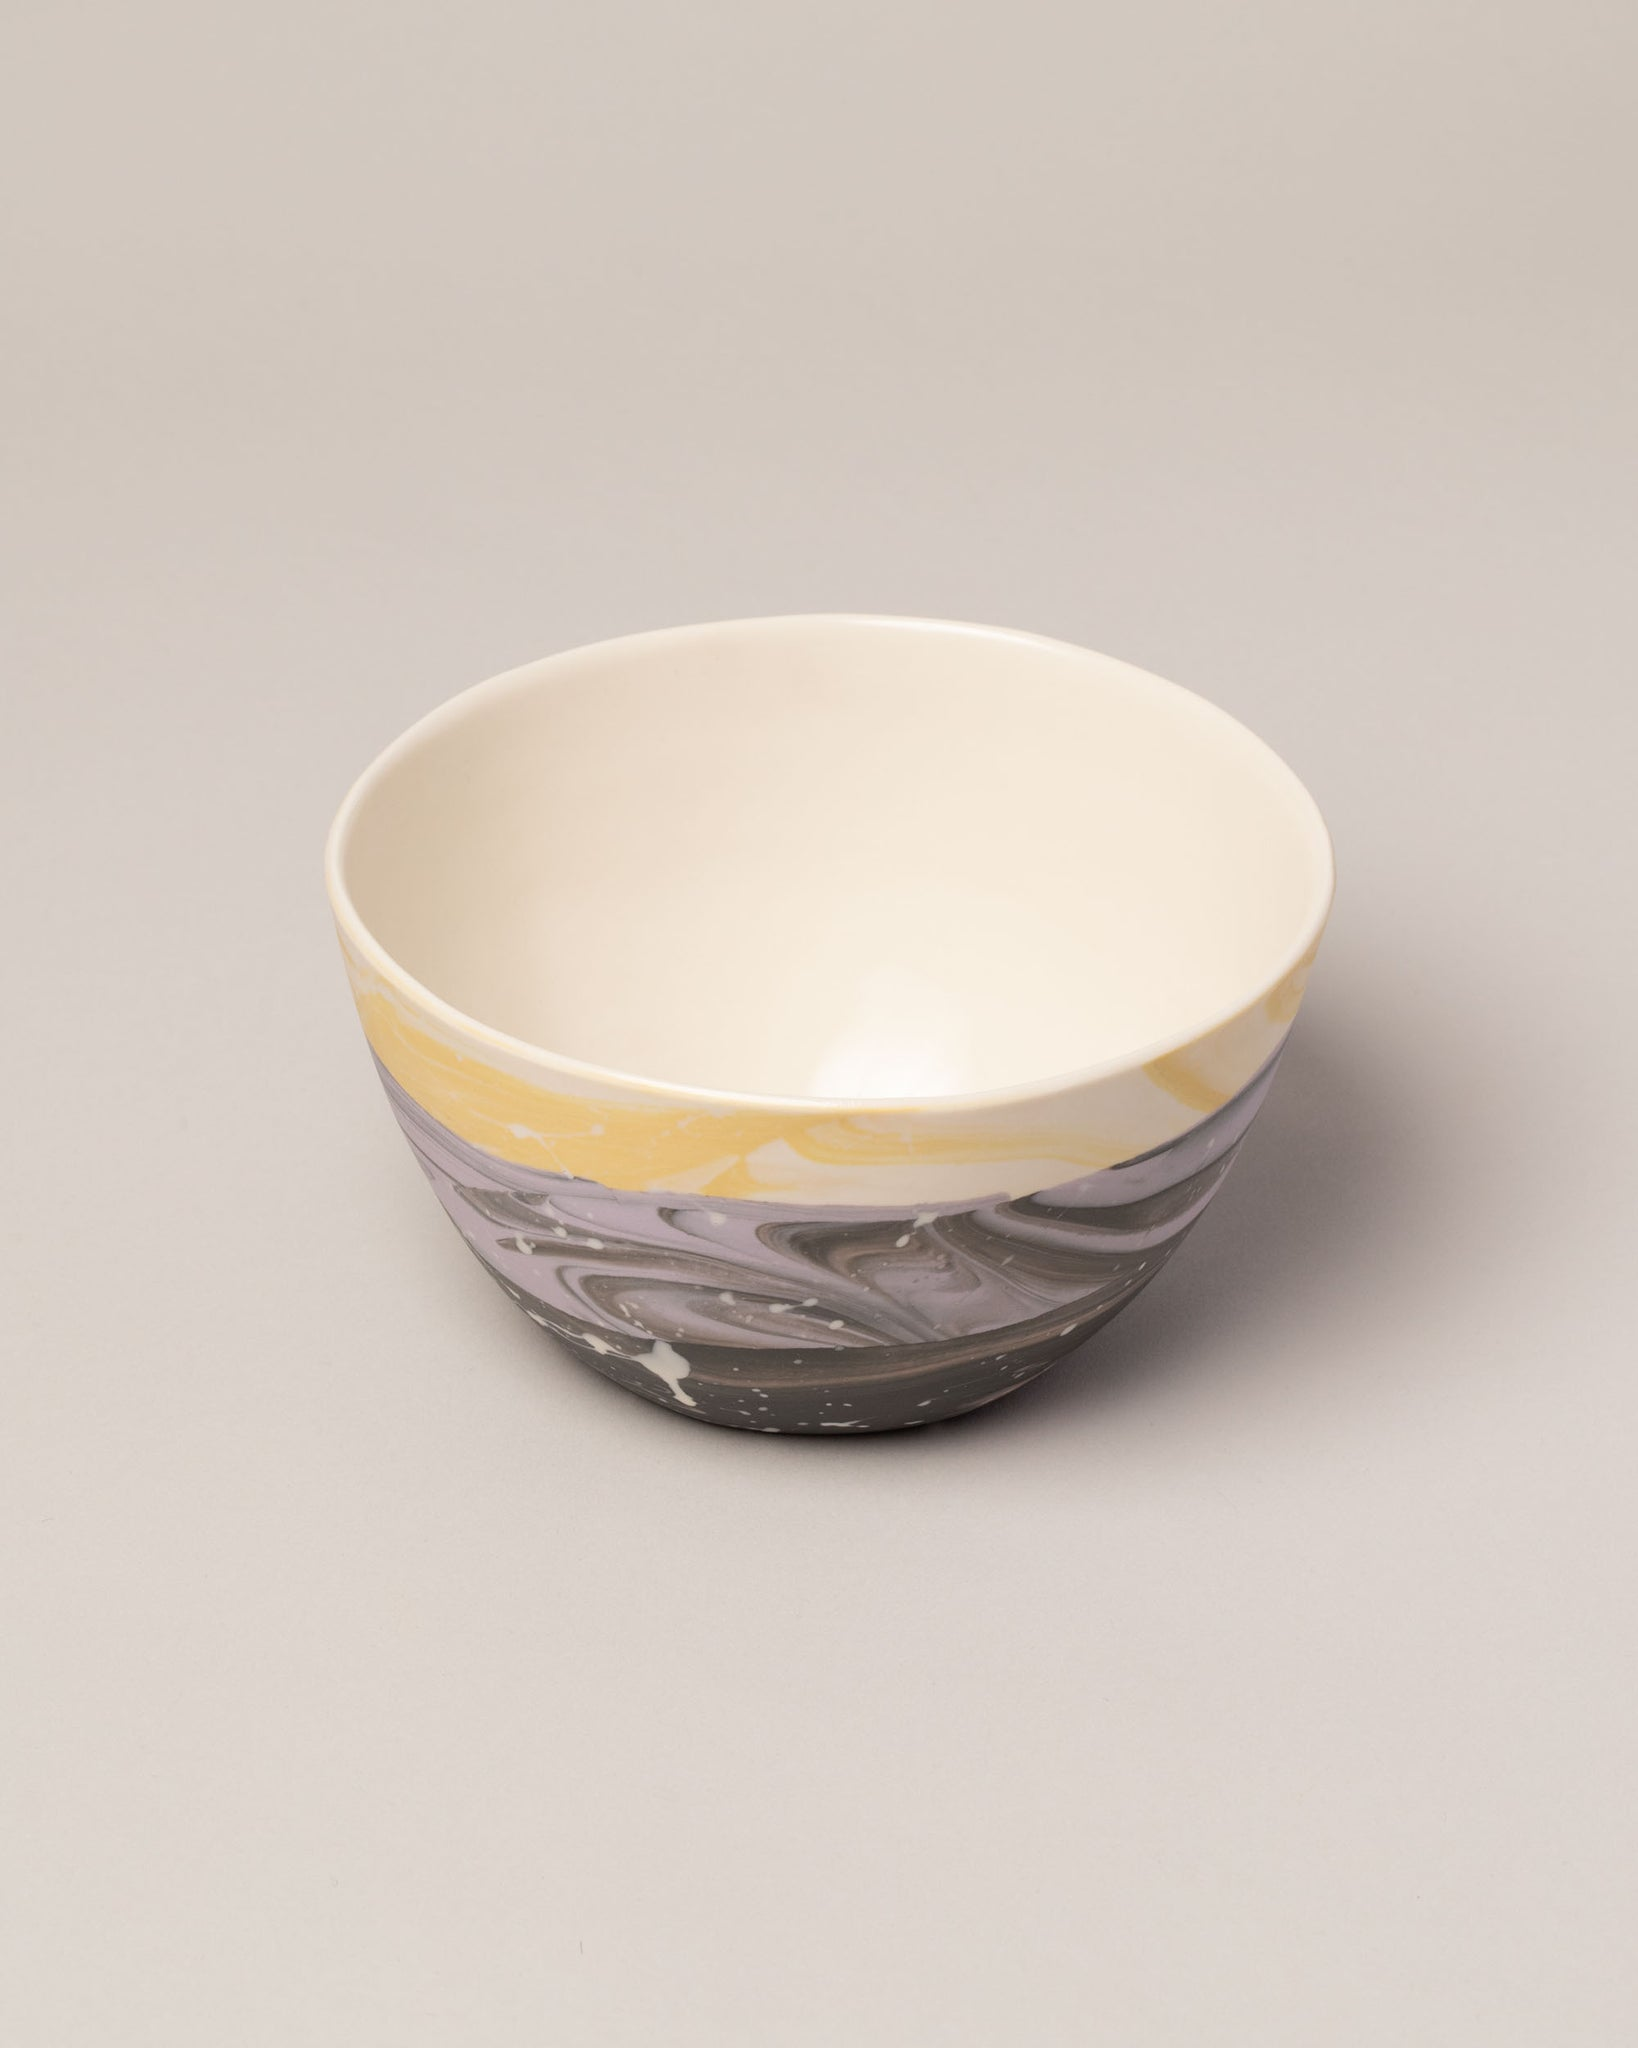 Stellar bowl in lavender and yellow top view